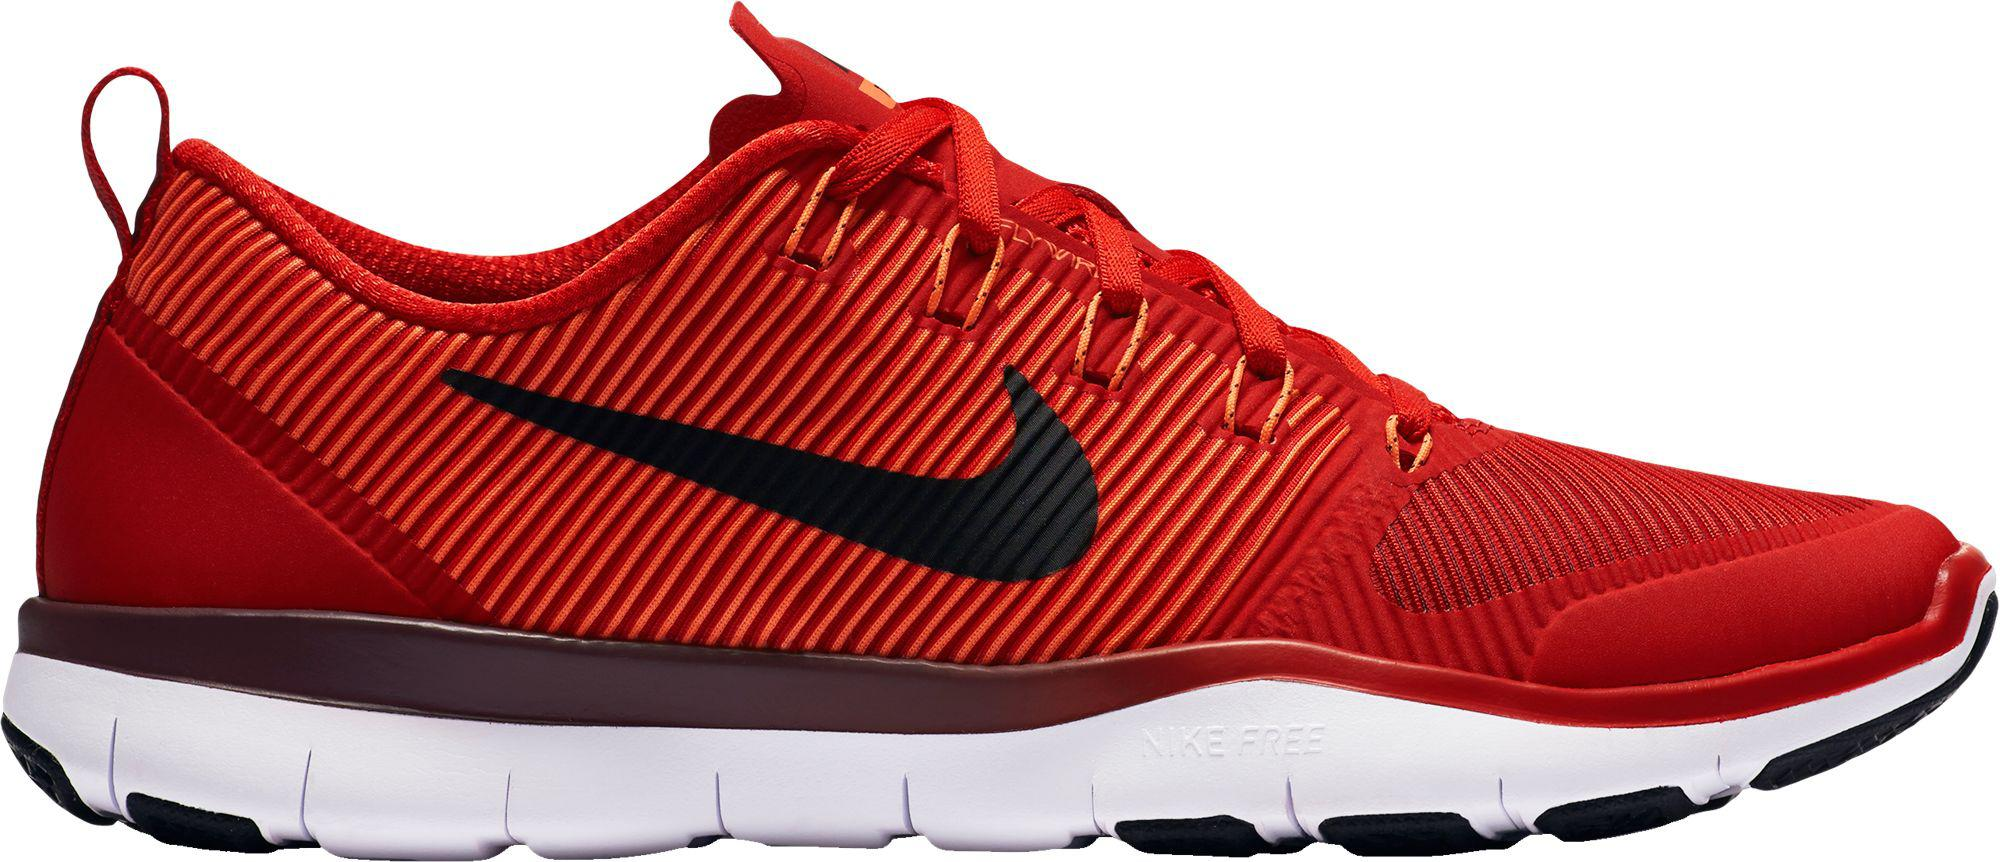 00ac5d962e62 ... shop nike red free train versatility training shoes for men lyst b6fca  f553a